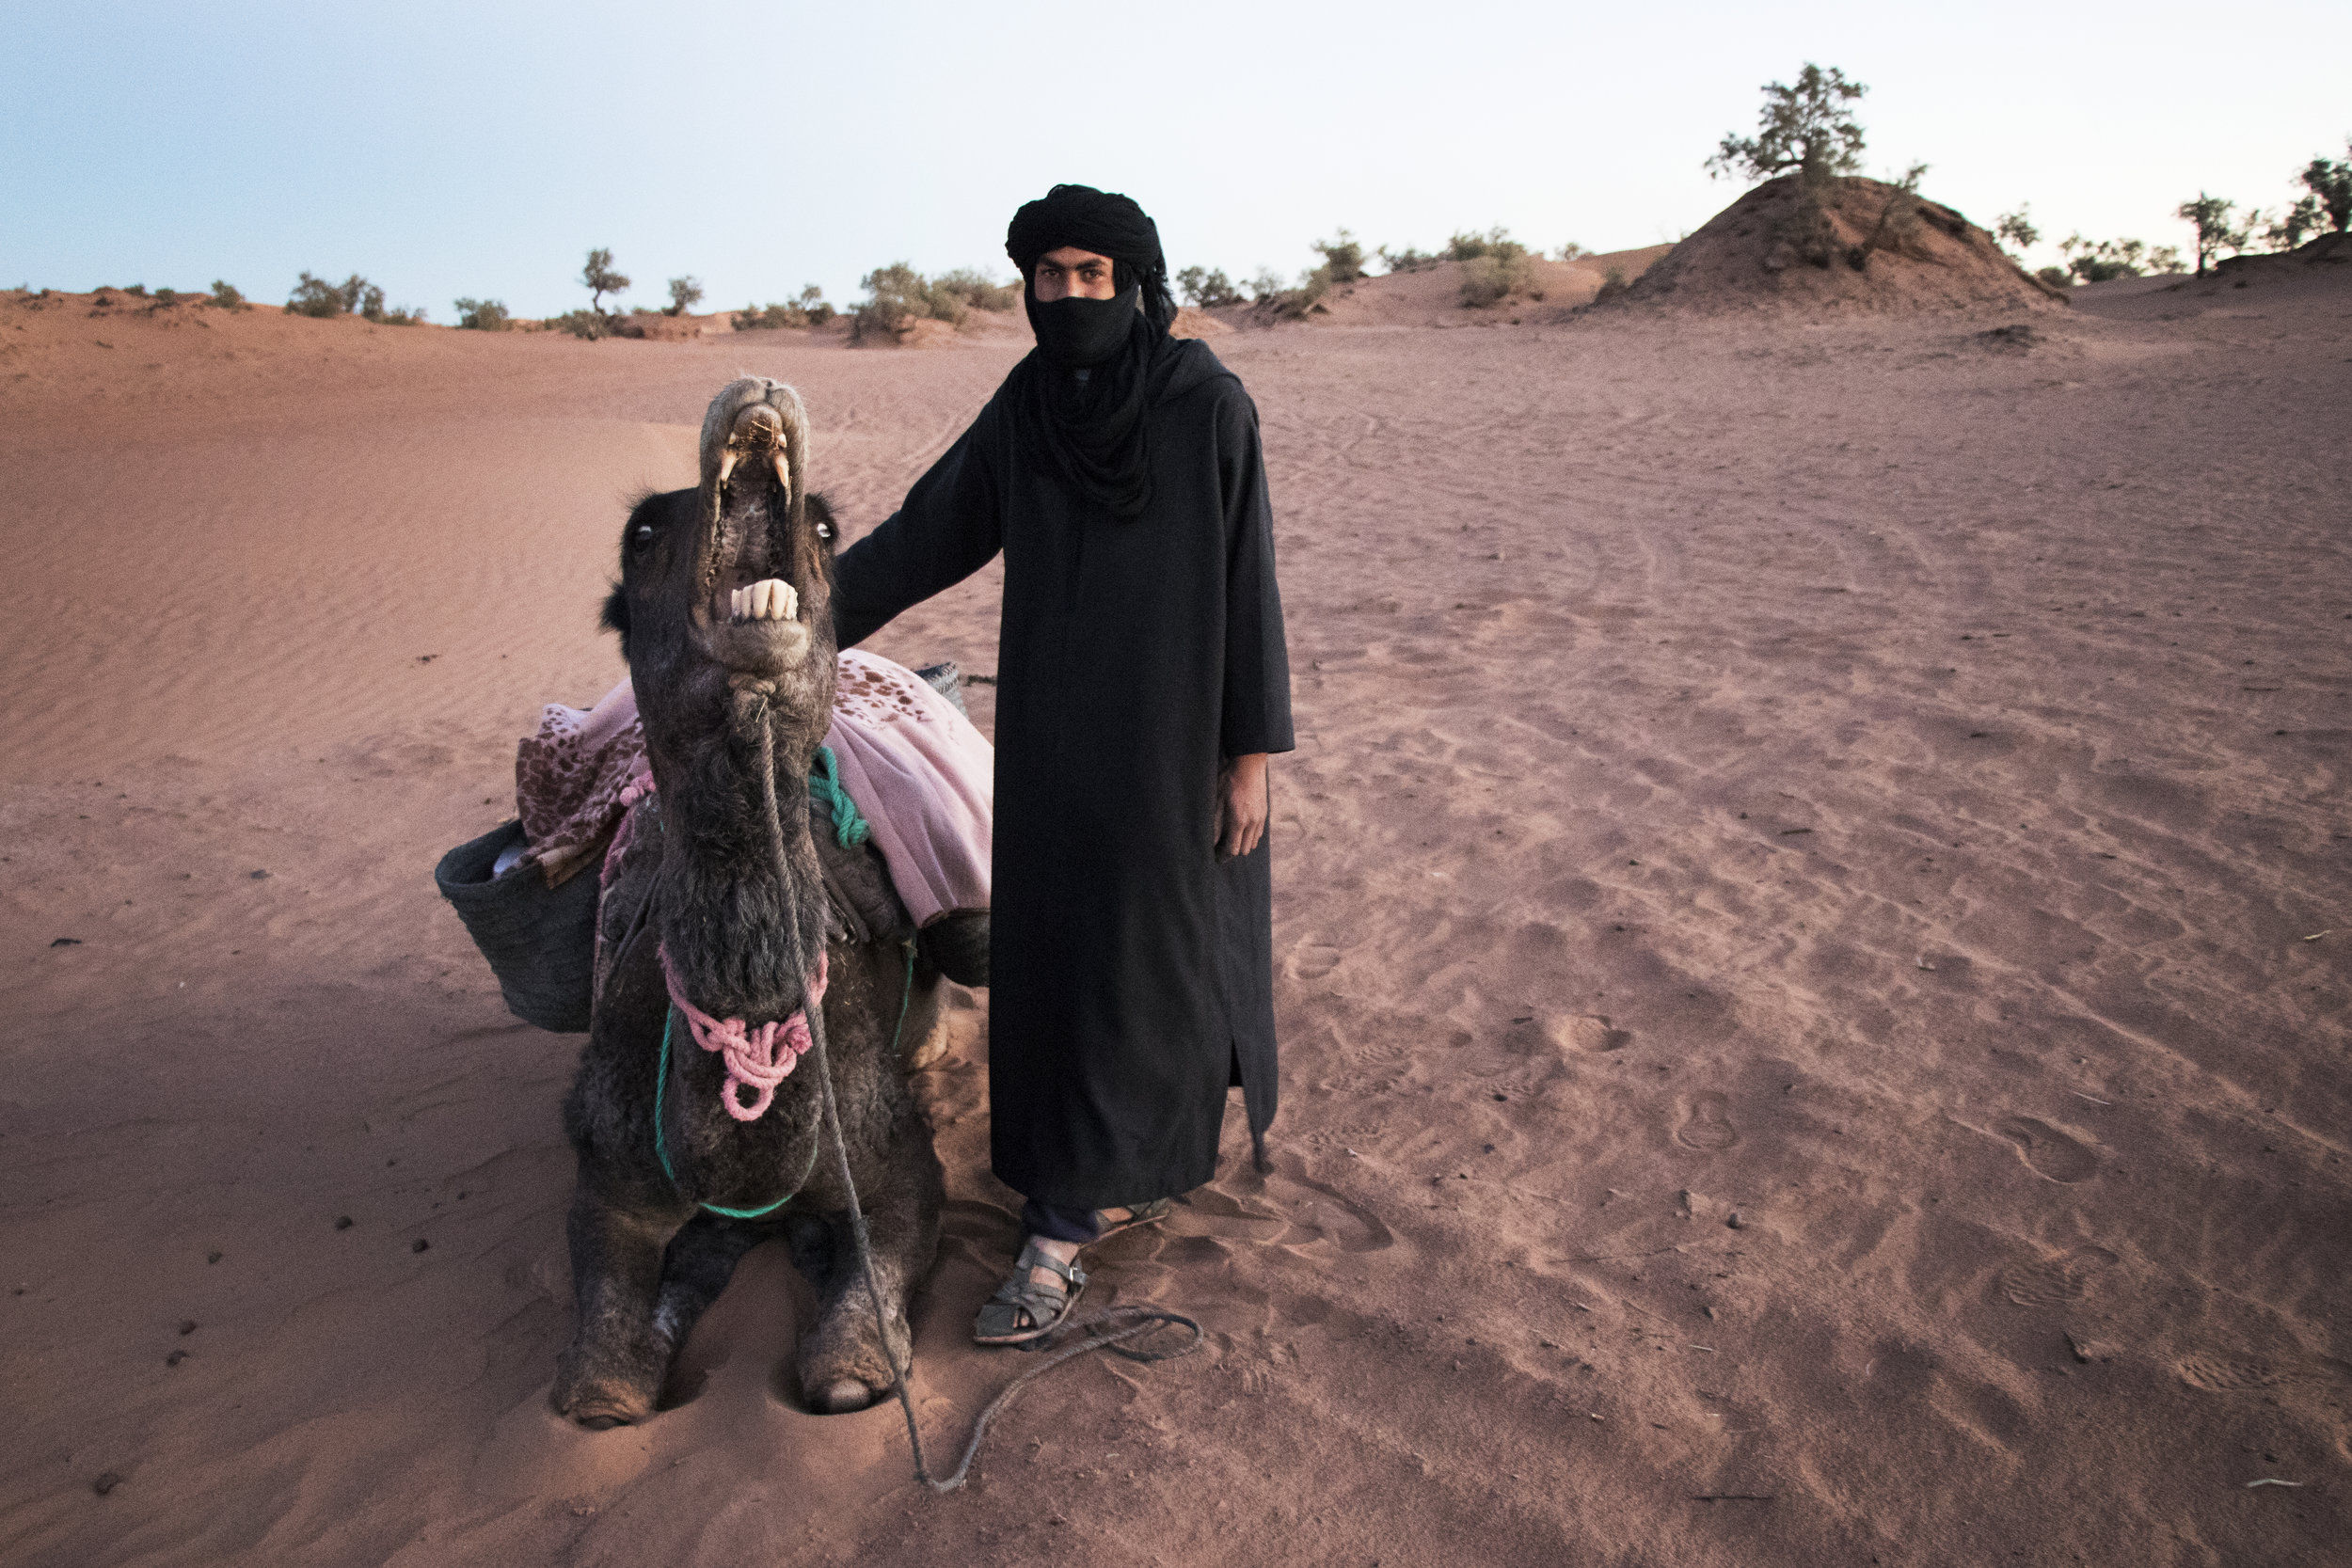 Allal and his camel who hates me